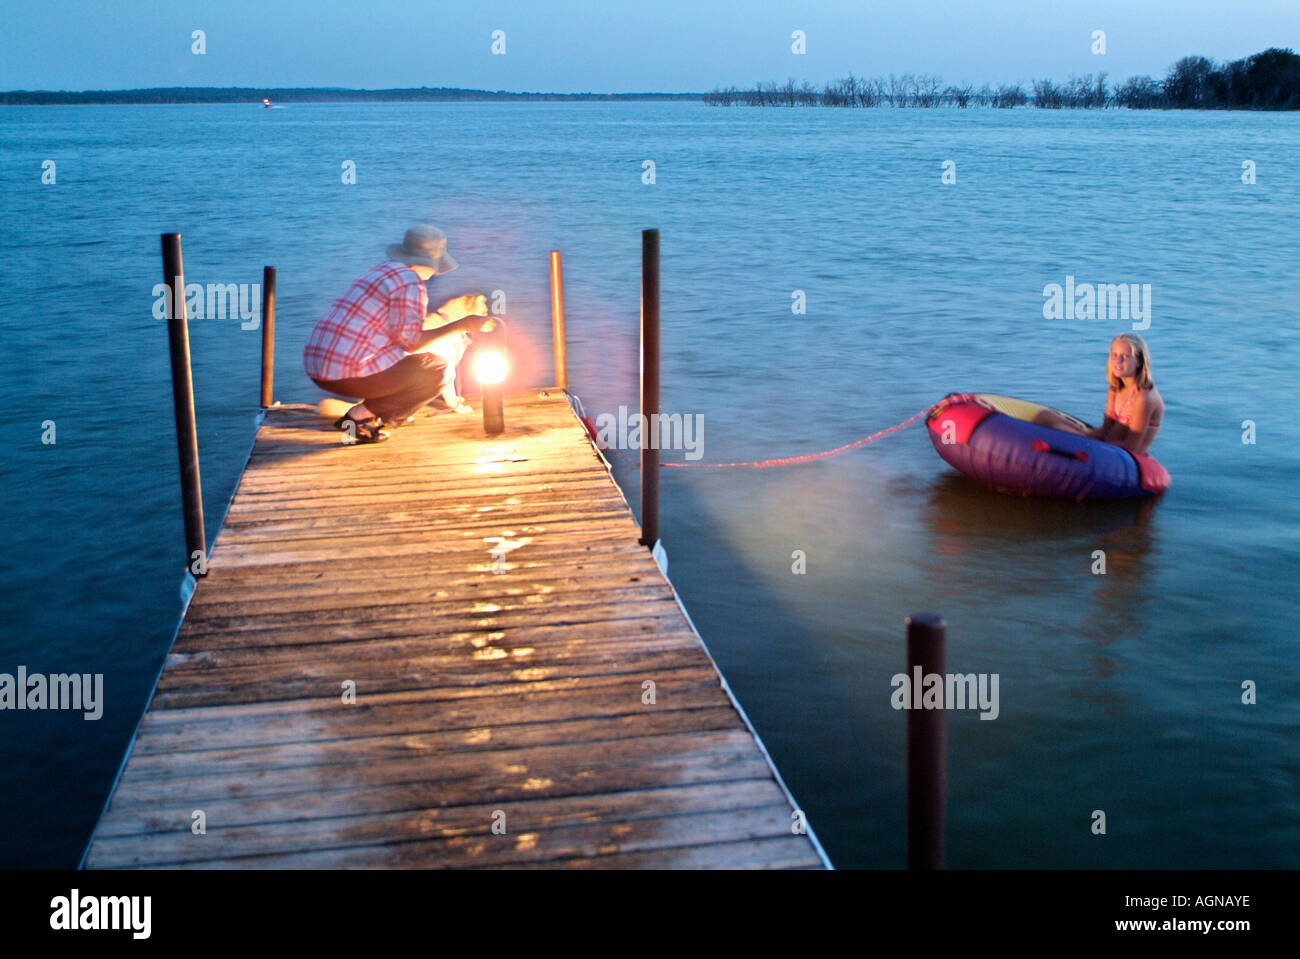 Kids playing in the water - Stock Image